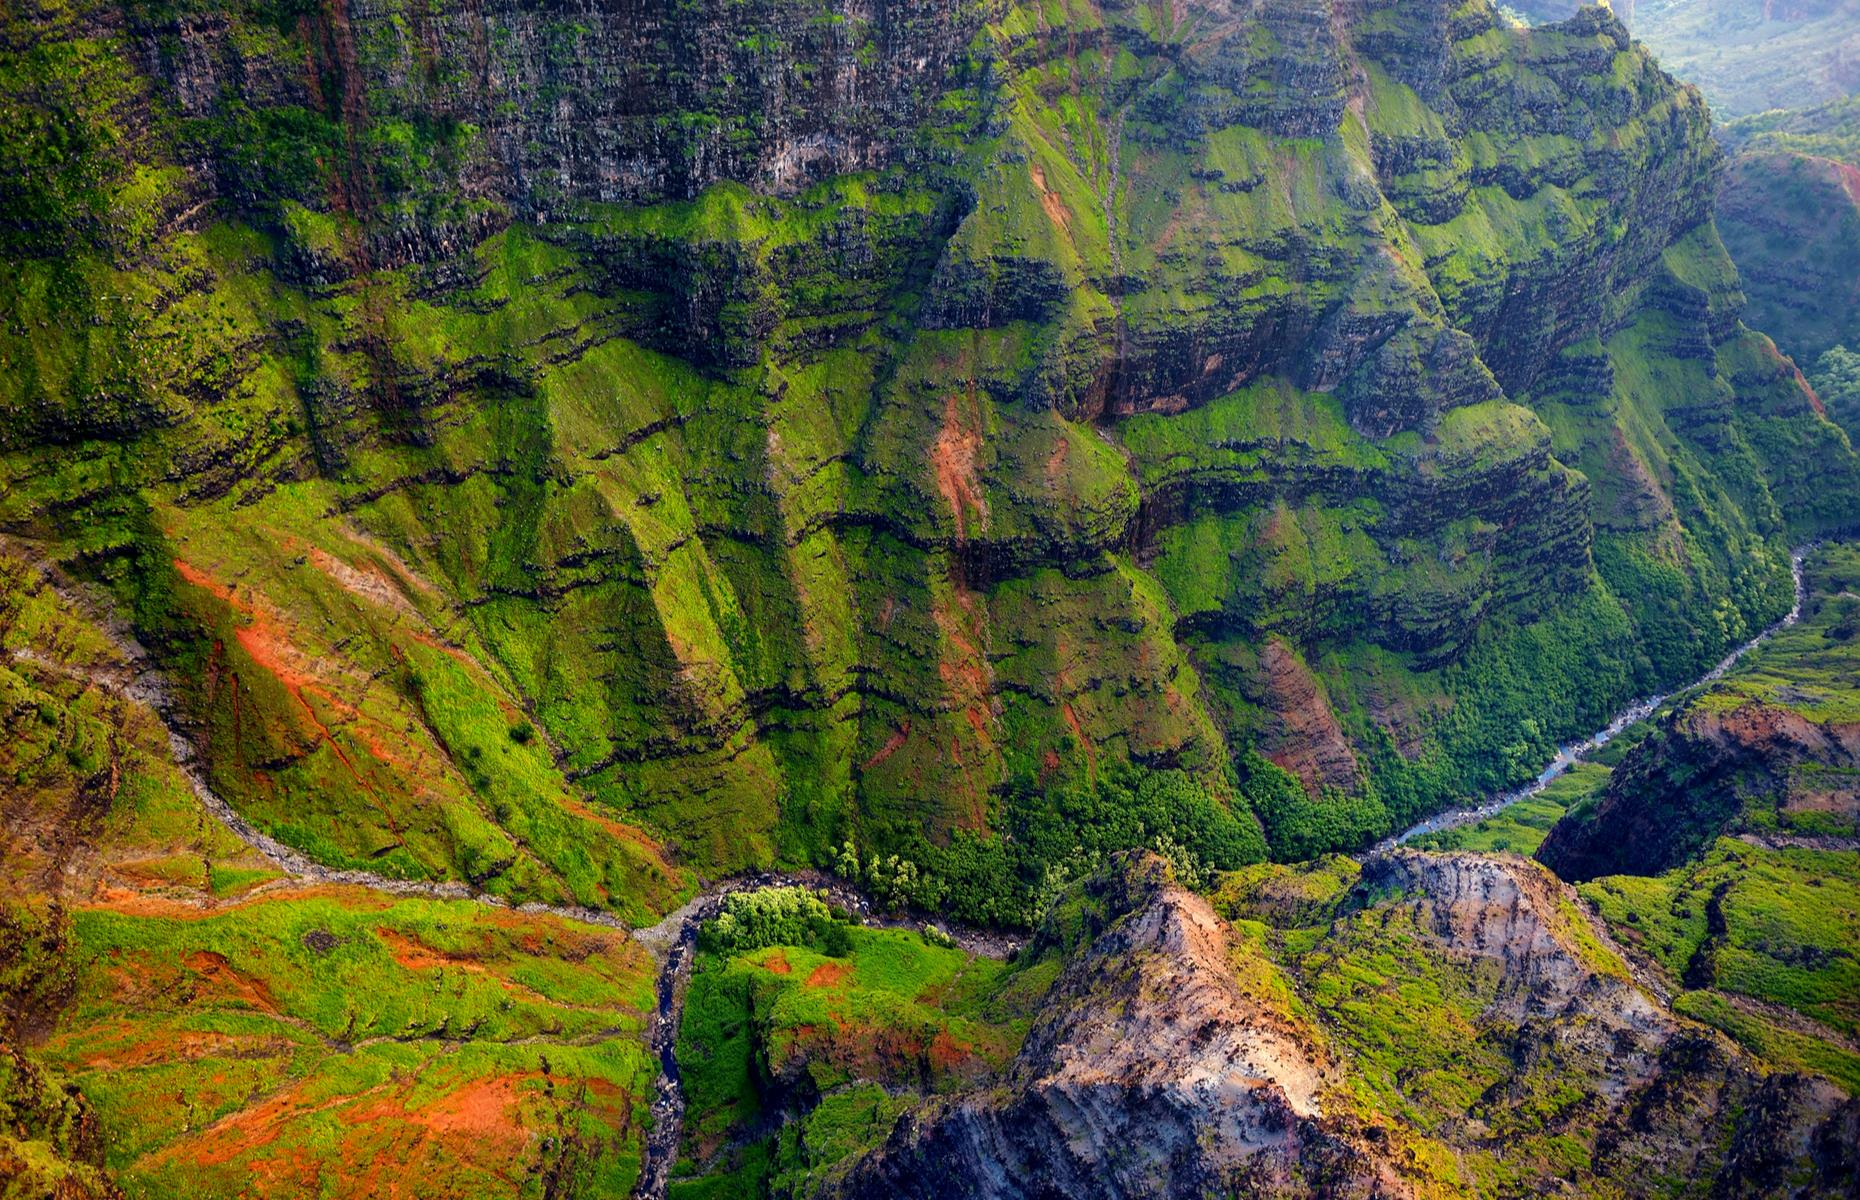 Slide 14 of 31: If you're visiting Hawaii, Waimea Canyon is not to be missed. Around 14 miles (23km) long and up to3,600 feet (1,097m) deep, the gorge stretches along in western Kuai, slicing through the Puu Ka Pele Forest Reserve to the west and the Na Pali-Kona Forest Reserve to the east. The scenic canyon was formed by the collapse of a volcano around fourmillion years ago, gaining its reddish blotches from erosion of the exposed basalt. You can visit by car, driving to Waimea Canyon or Puu Hina Hina lookouts or hike one of the canyon's many trails.